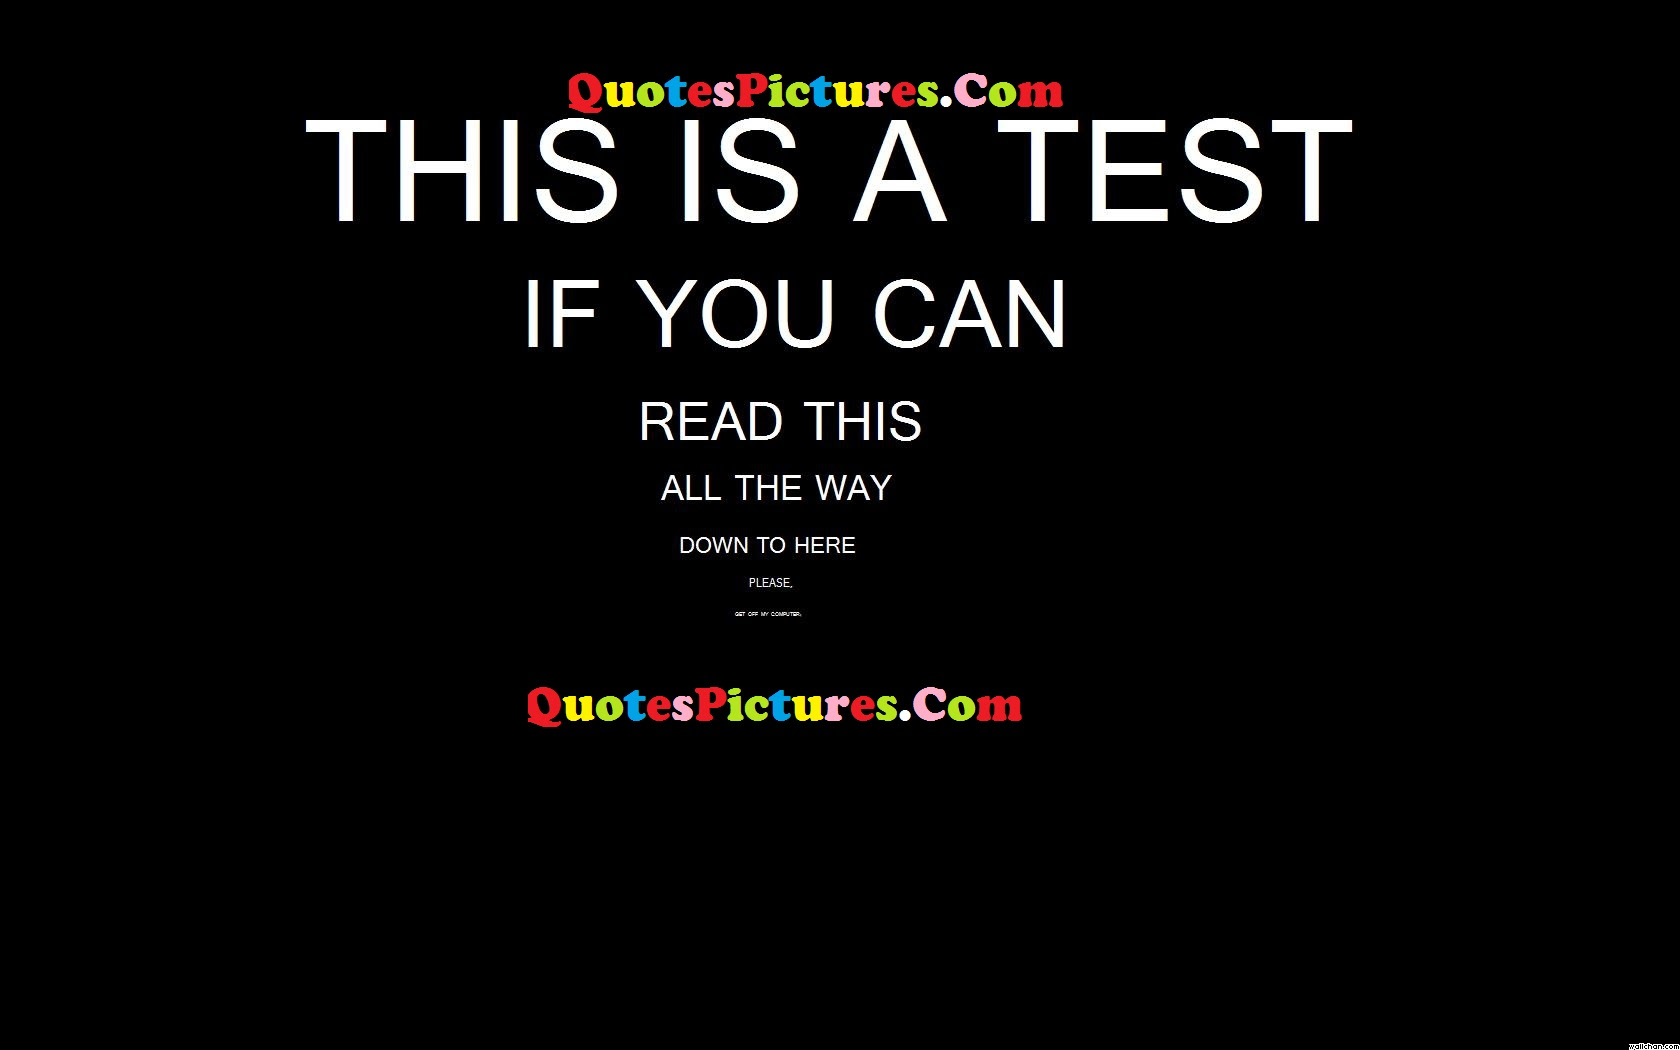 Best Life Quote This Is A Test If You Can Read This All The Way